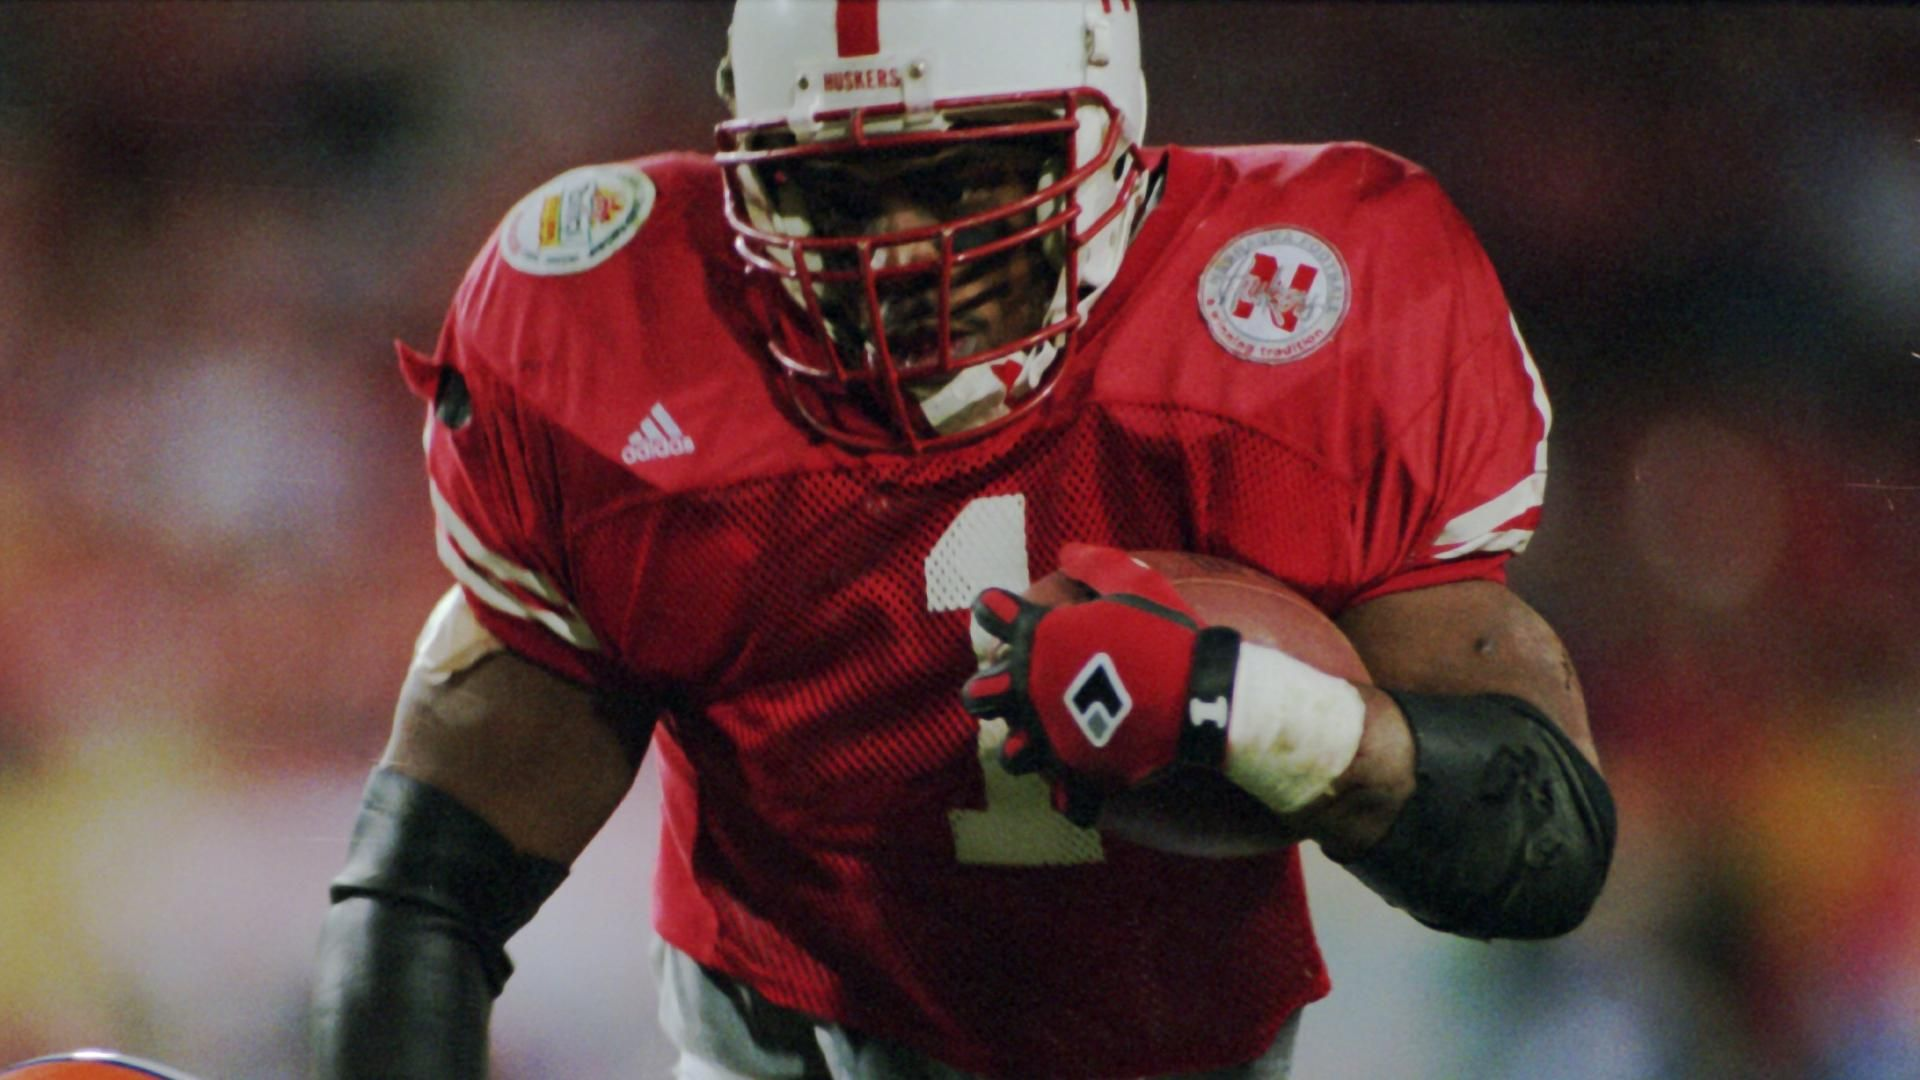 https://secure.espncdn.com/combiner/i?img=/media/motion/2016/0113/dm_160113_CFB_Live_Lawrence_Phillips_died_in_jail_cell/dm_160113_CFB_Live_Lawrence_Phillips_died_in_jail_cell.jpg